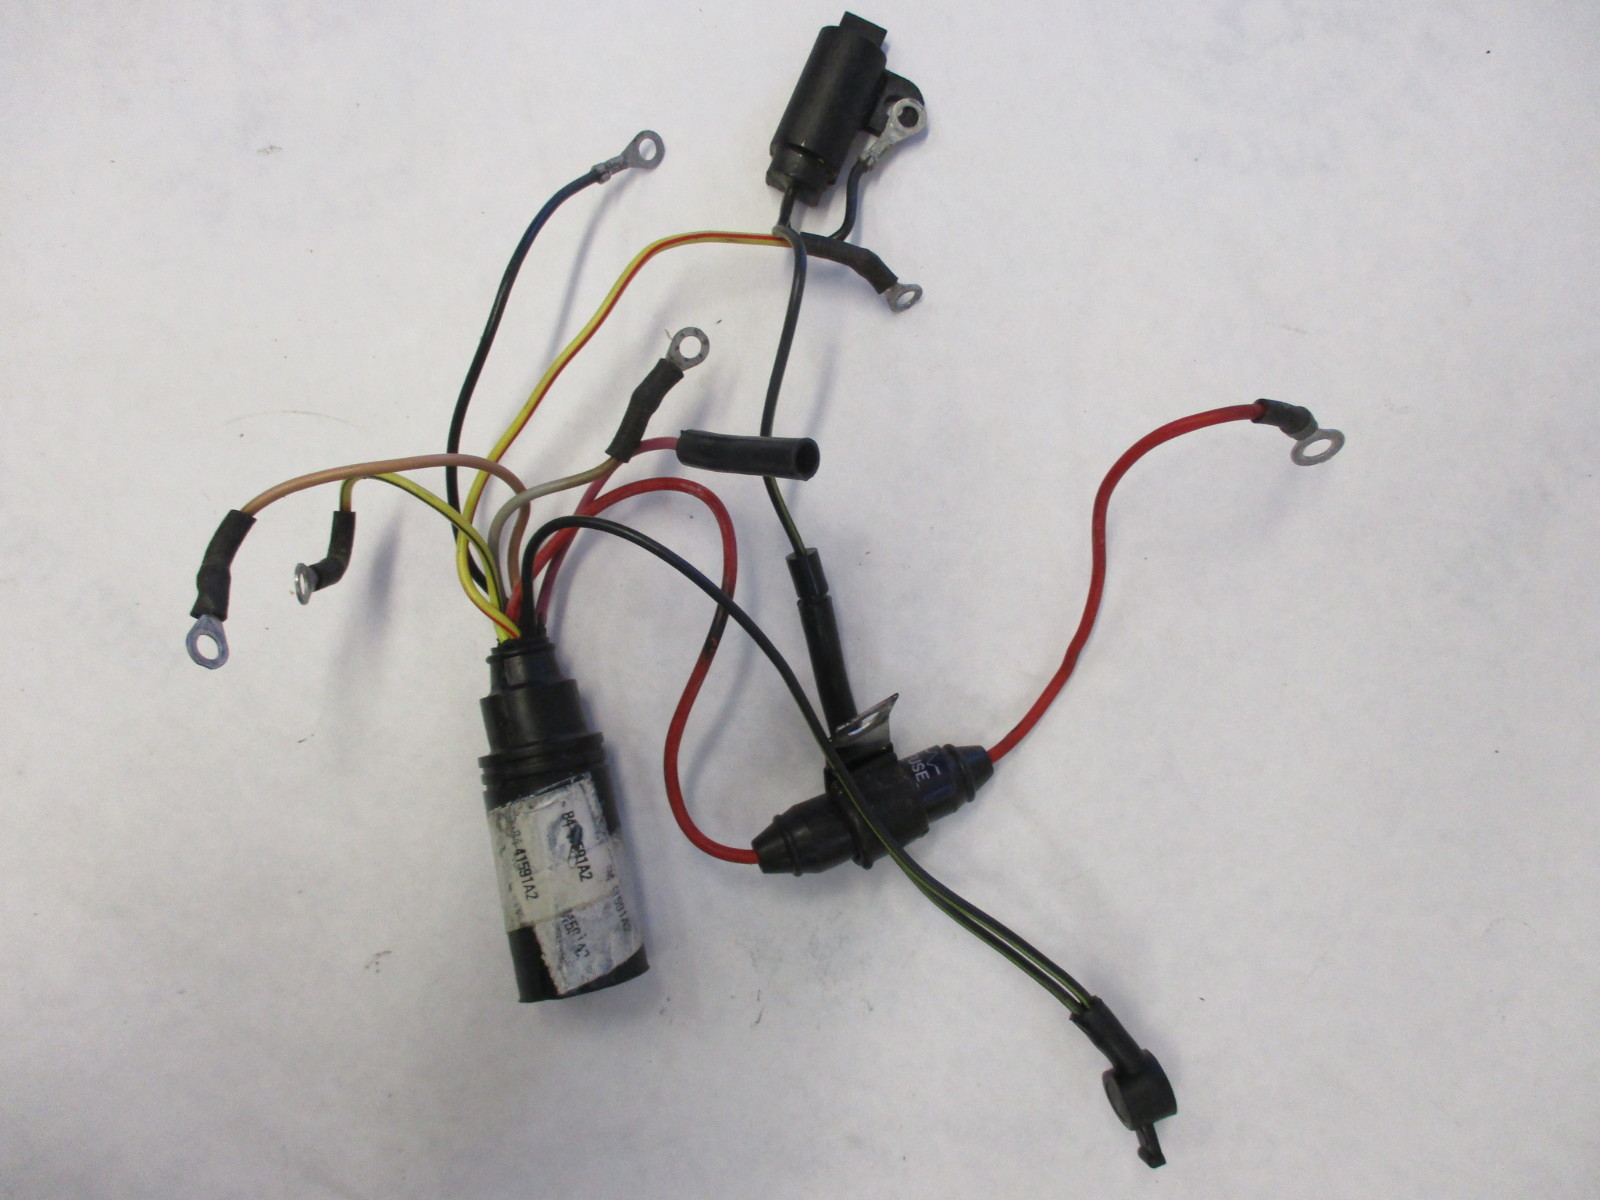 41591a3 engine wire harness for70 90 hp 3 cyl mercury outboard 84 41591a2 ebay